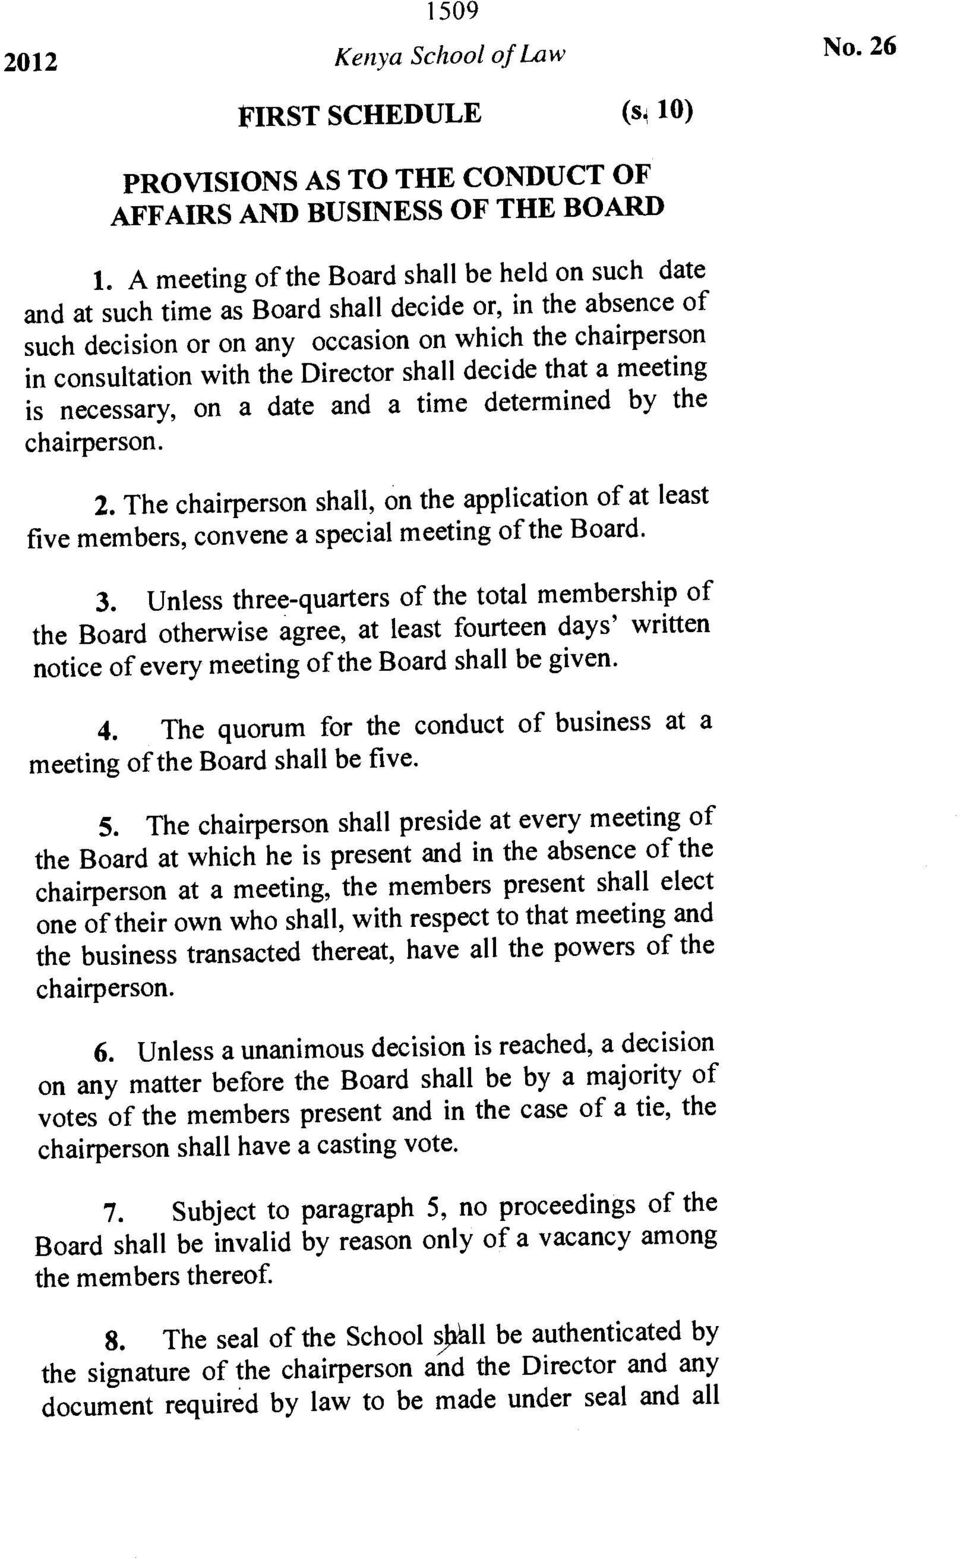 Director shall decide that a meeting is necessary, on a date and a time determined by the chairperson. 2.